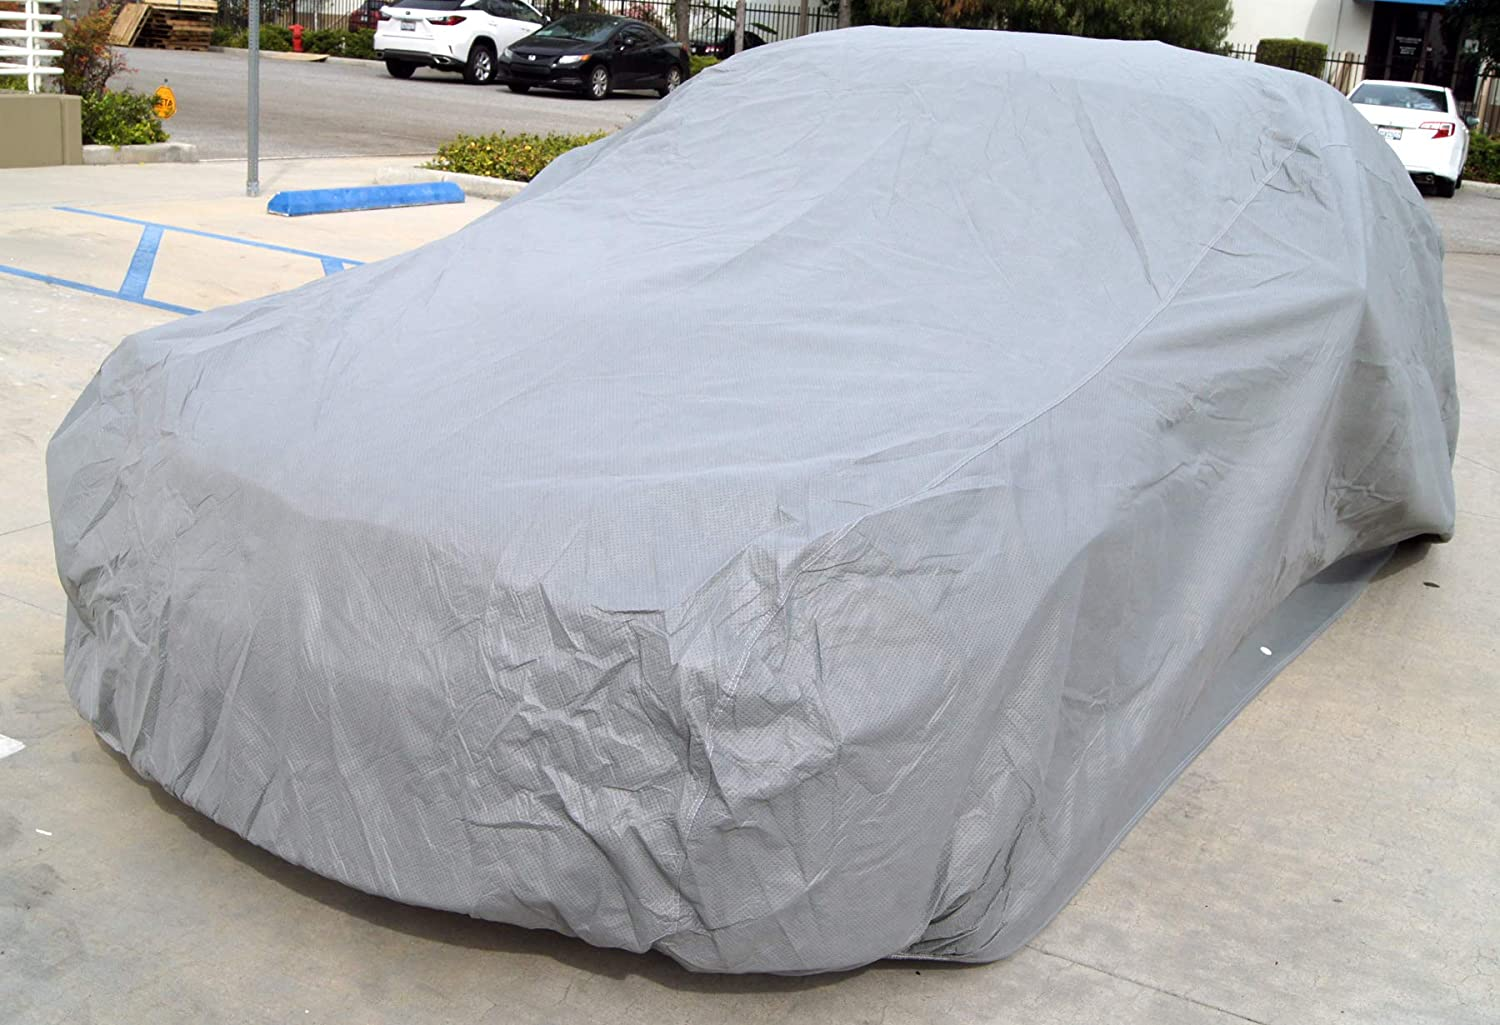 Tuningpros CC-S1 Multiple Layers Non-Woven Fabric Car Cover Waterproof Rain Barrier Fit up to Size 159.8 x 65.0